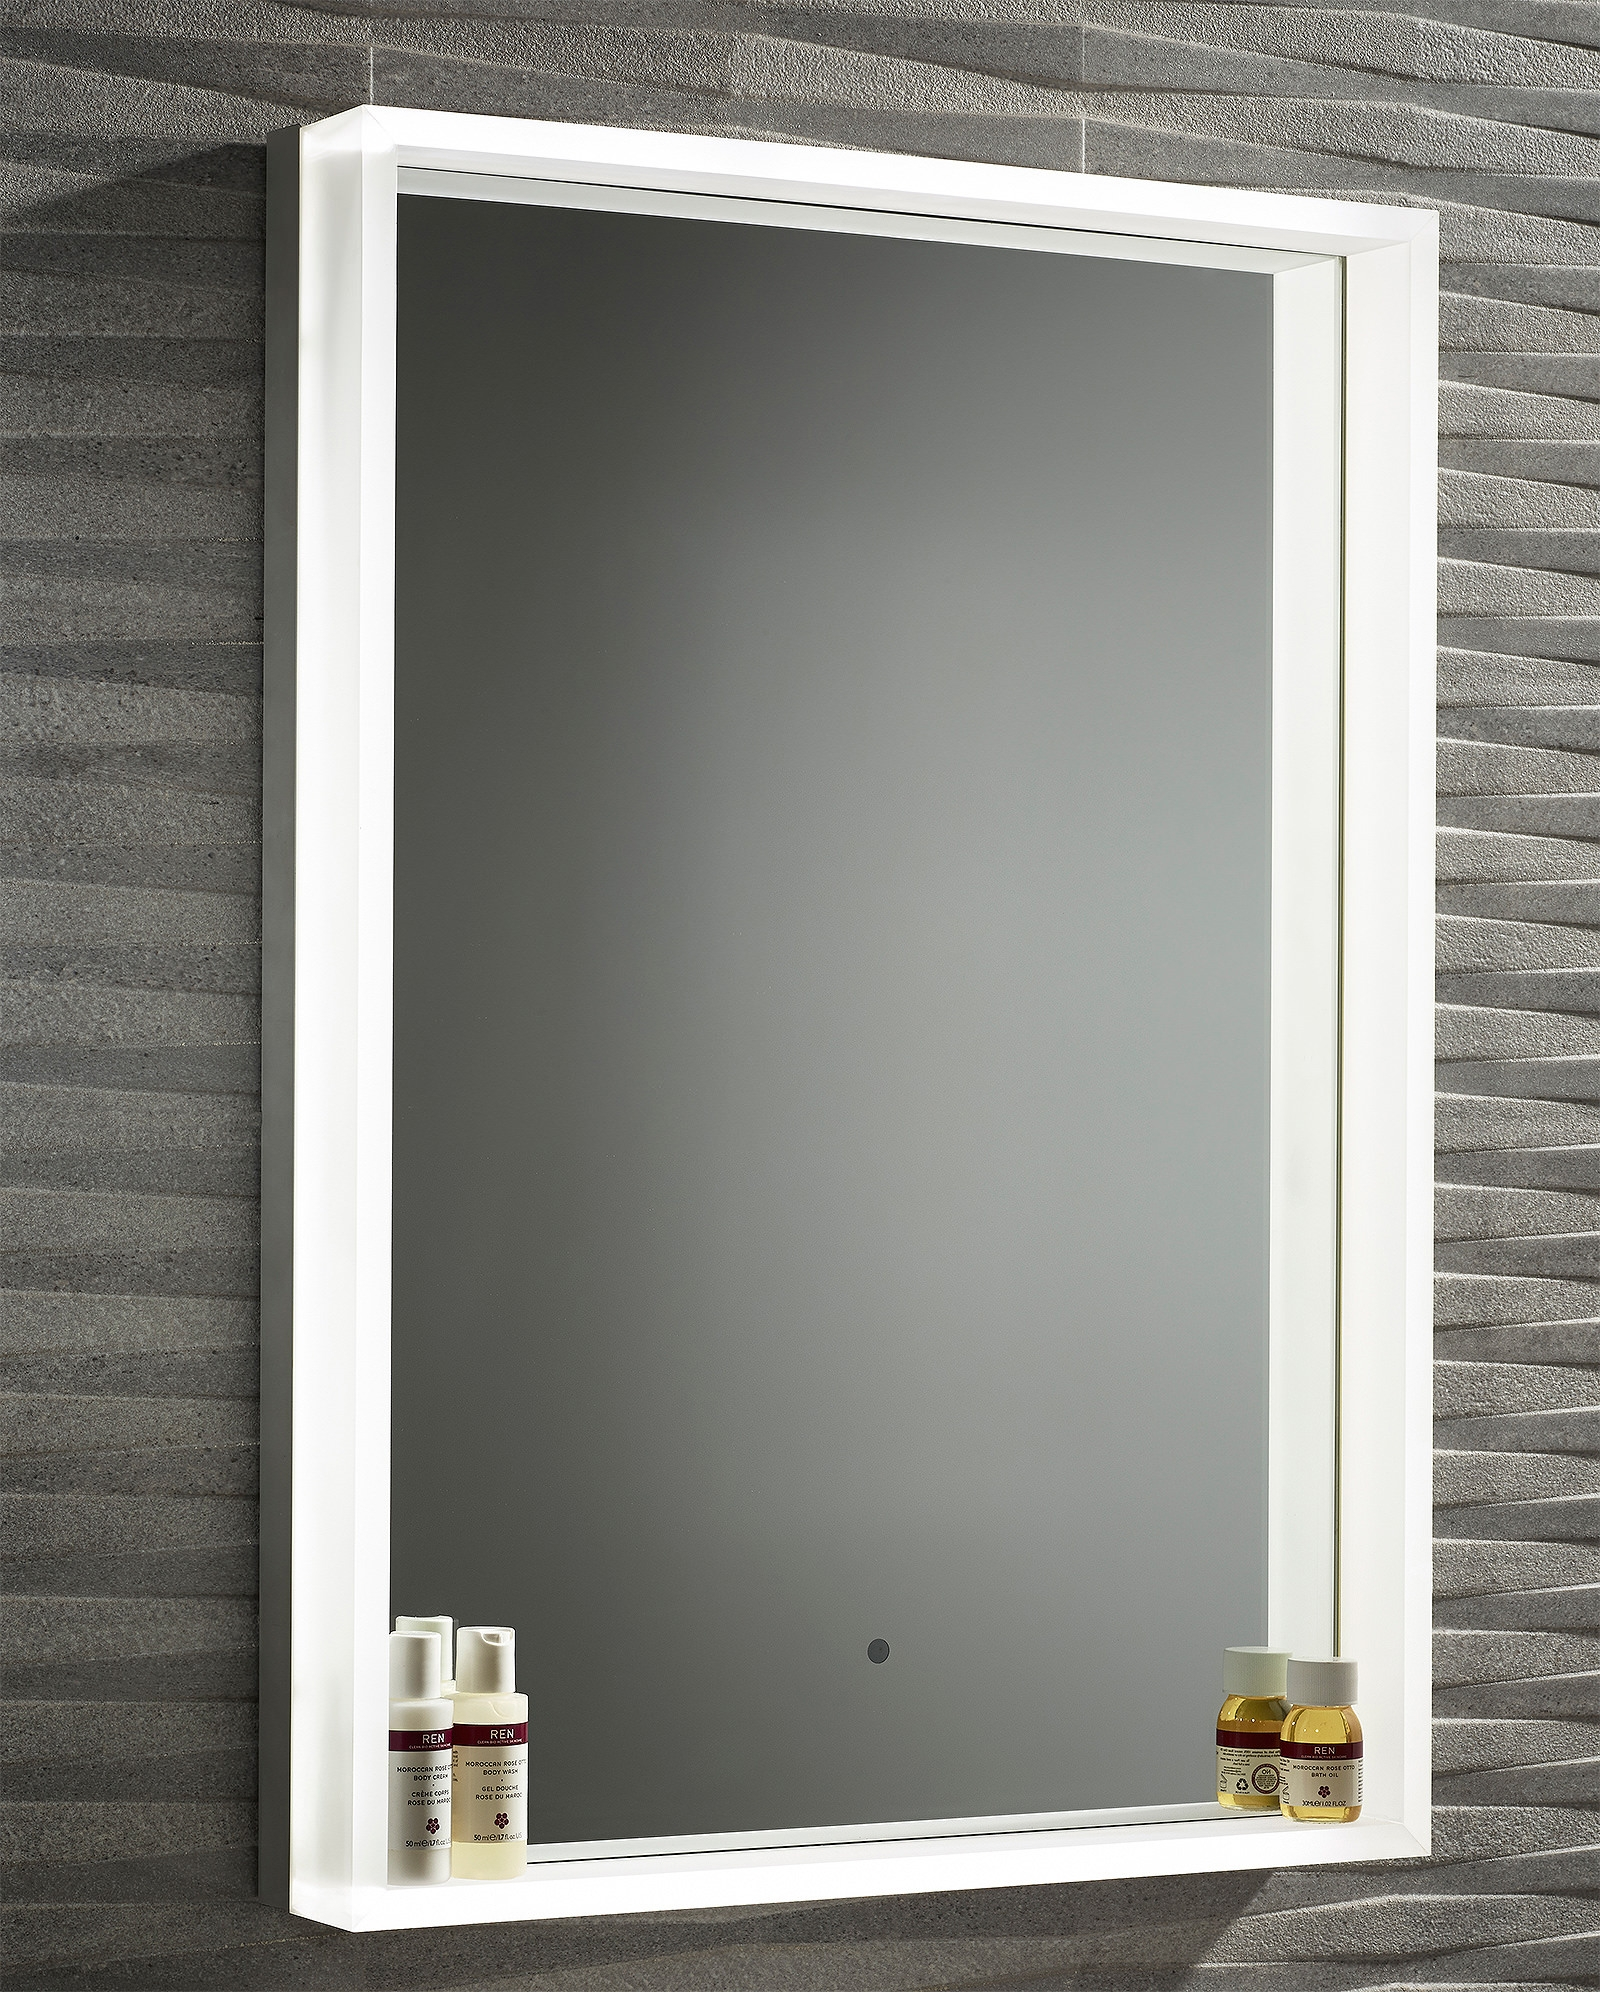 Roper Rhodes Aura Illuminated Framed Mirror 500 X 700mm Chrome Intended For Chrome Framed Mirror (Image 12 of 15)